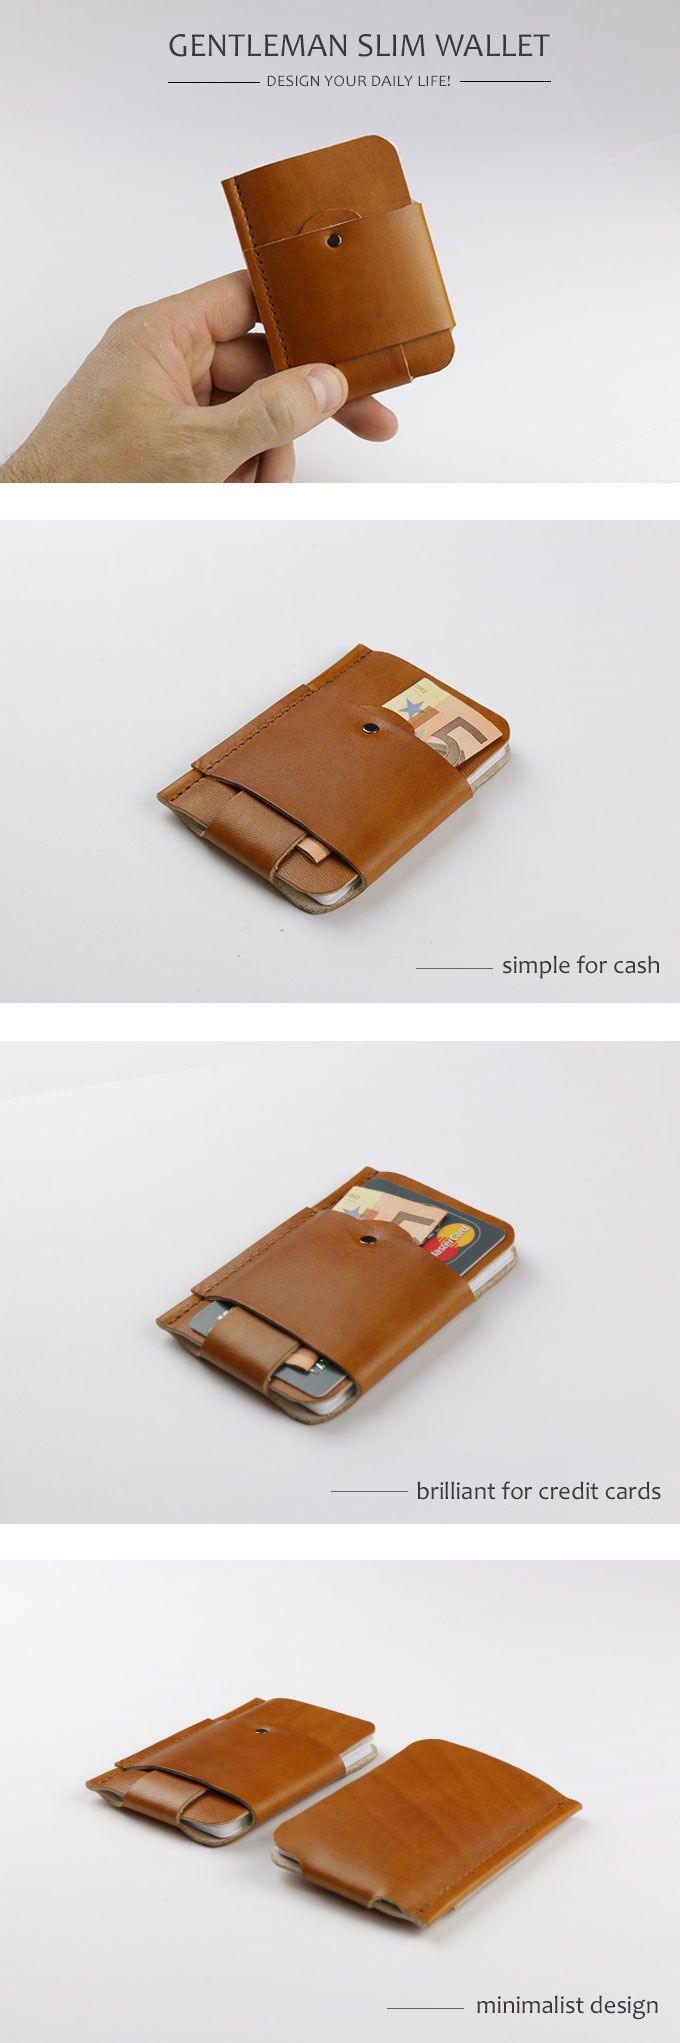 GENTLEMAN SLIM WALLET - DESIGN YOUR DAILY LIFE! by A. Nagel & Co. — Kickstarter